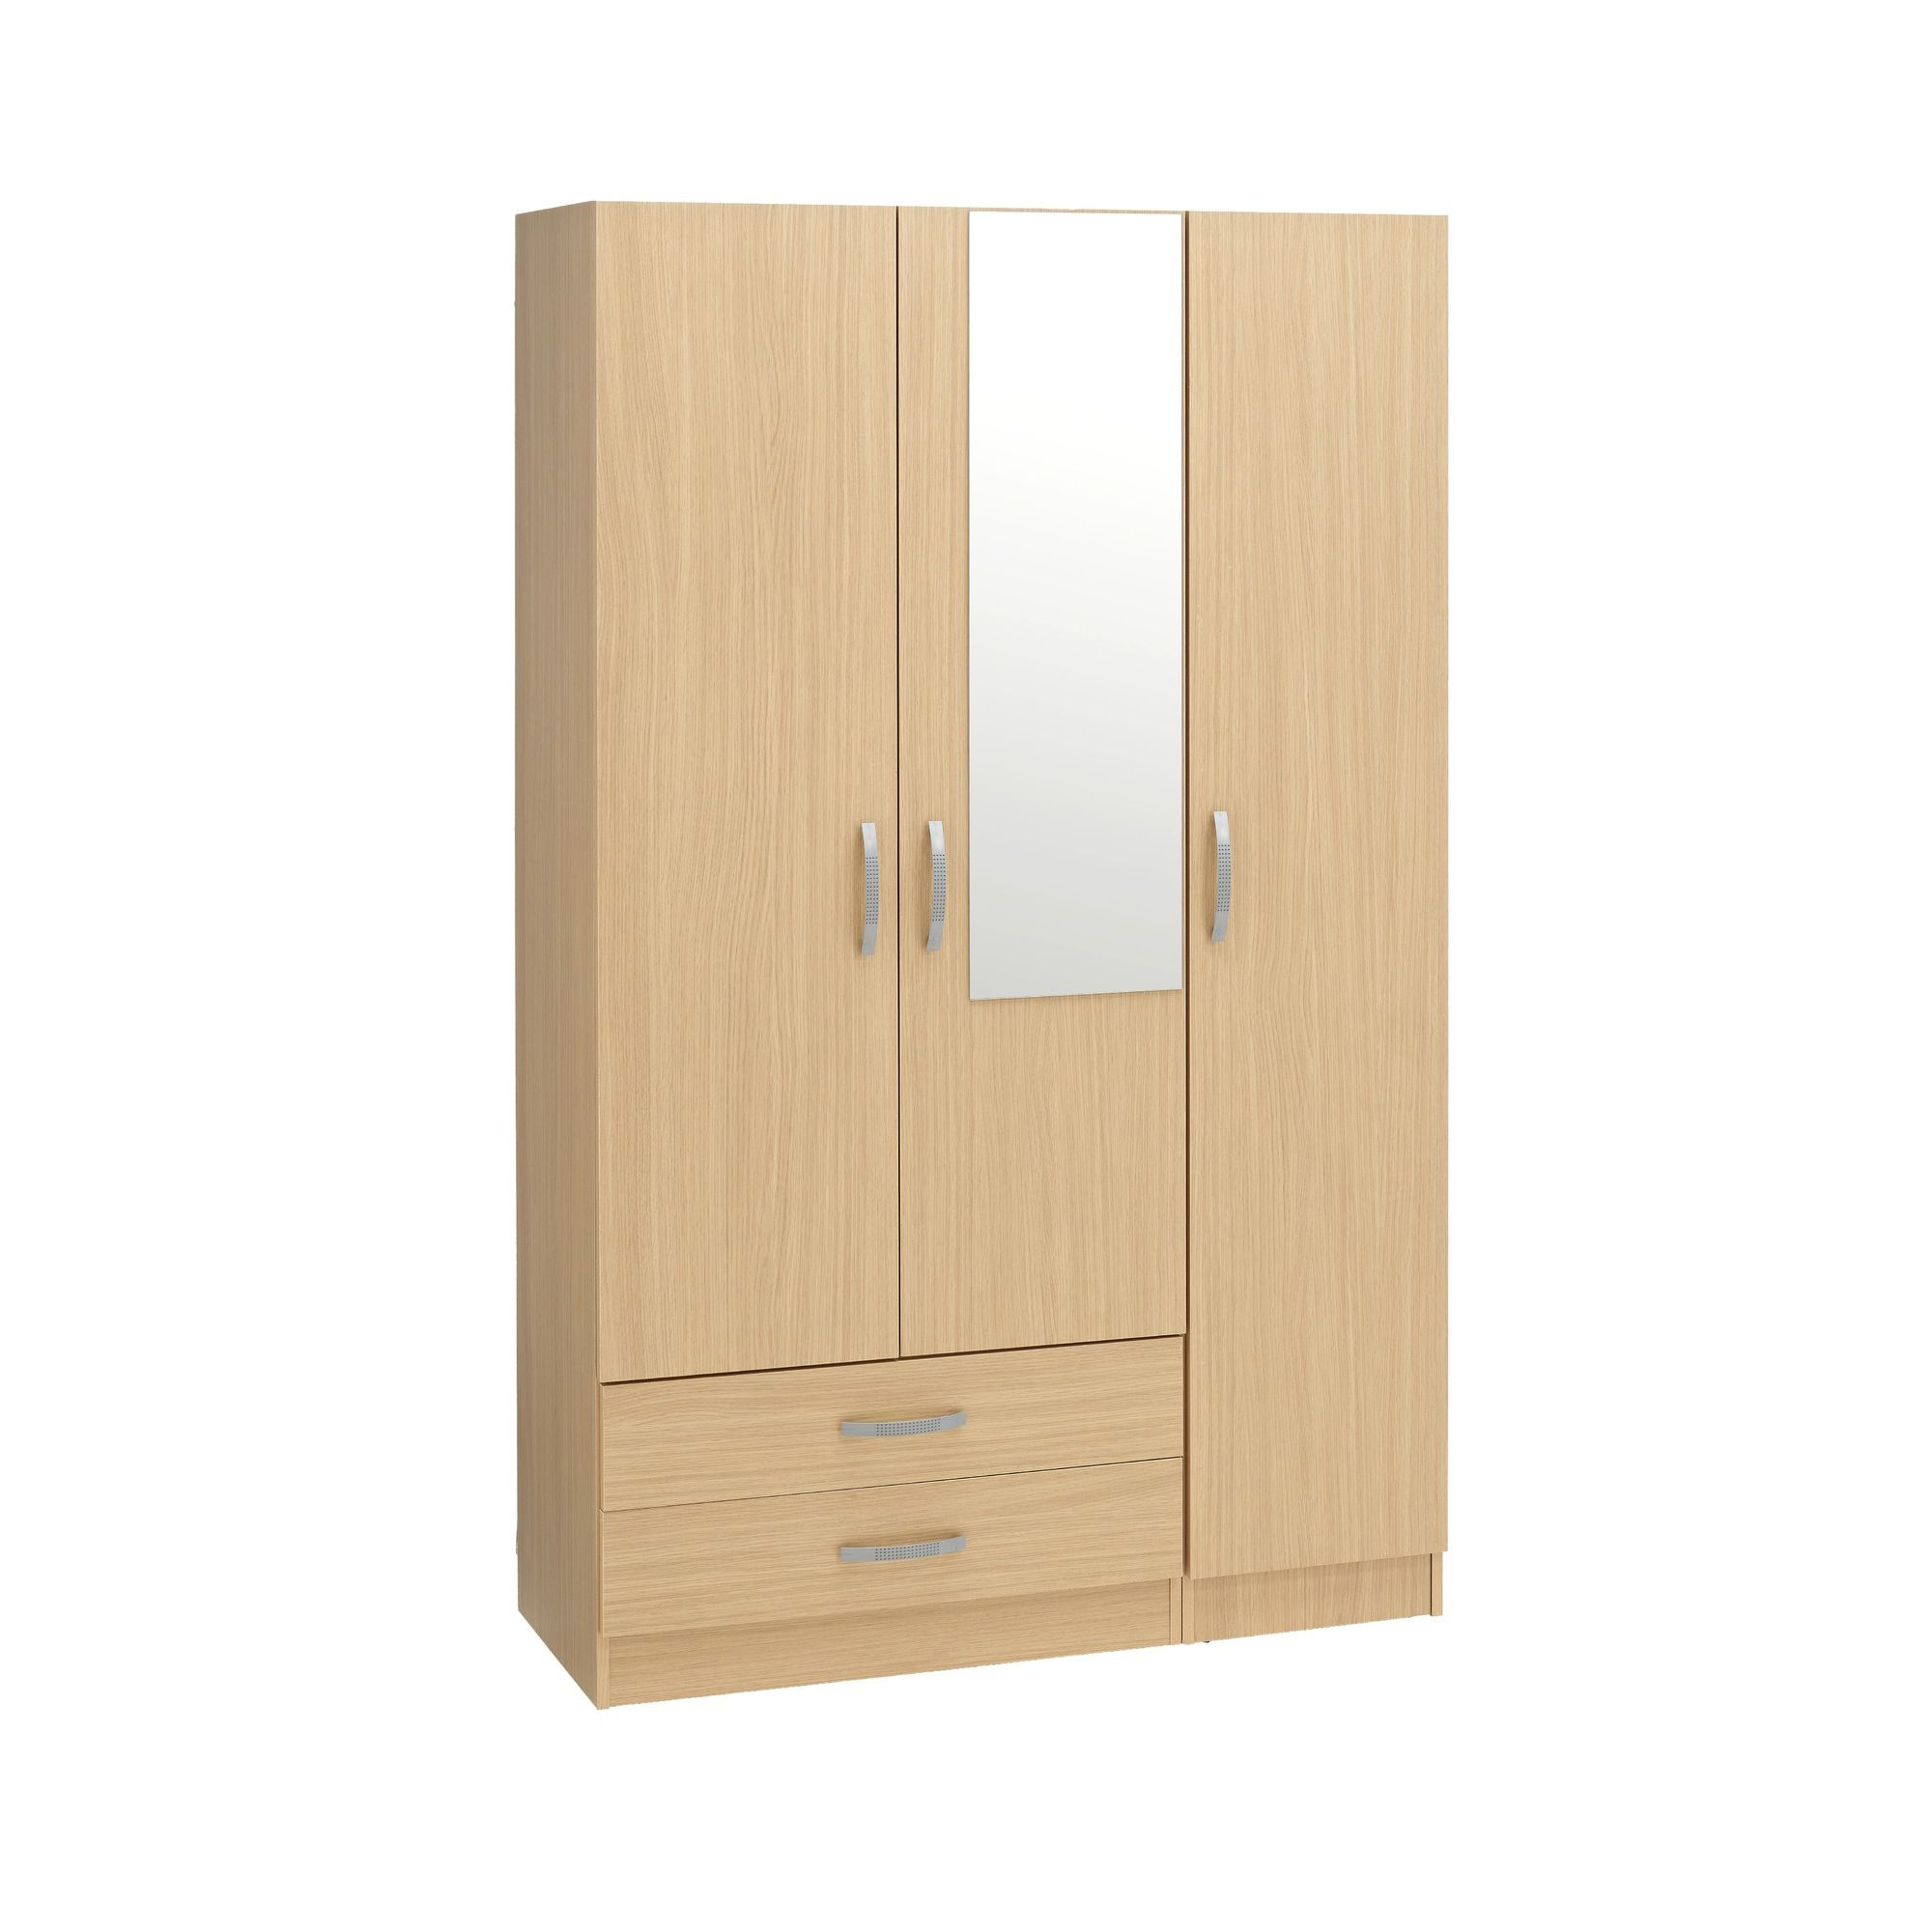 Ideal Furniture Budapest 3 Door Wardrobe - Walnut at Tesco Direct